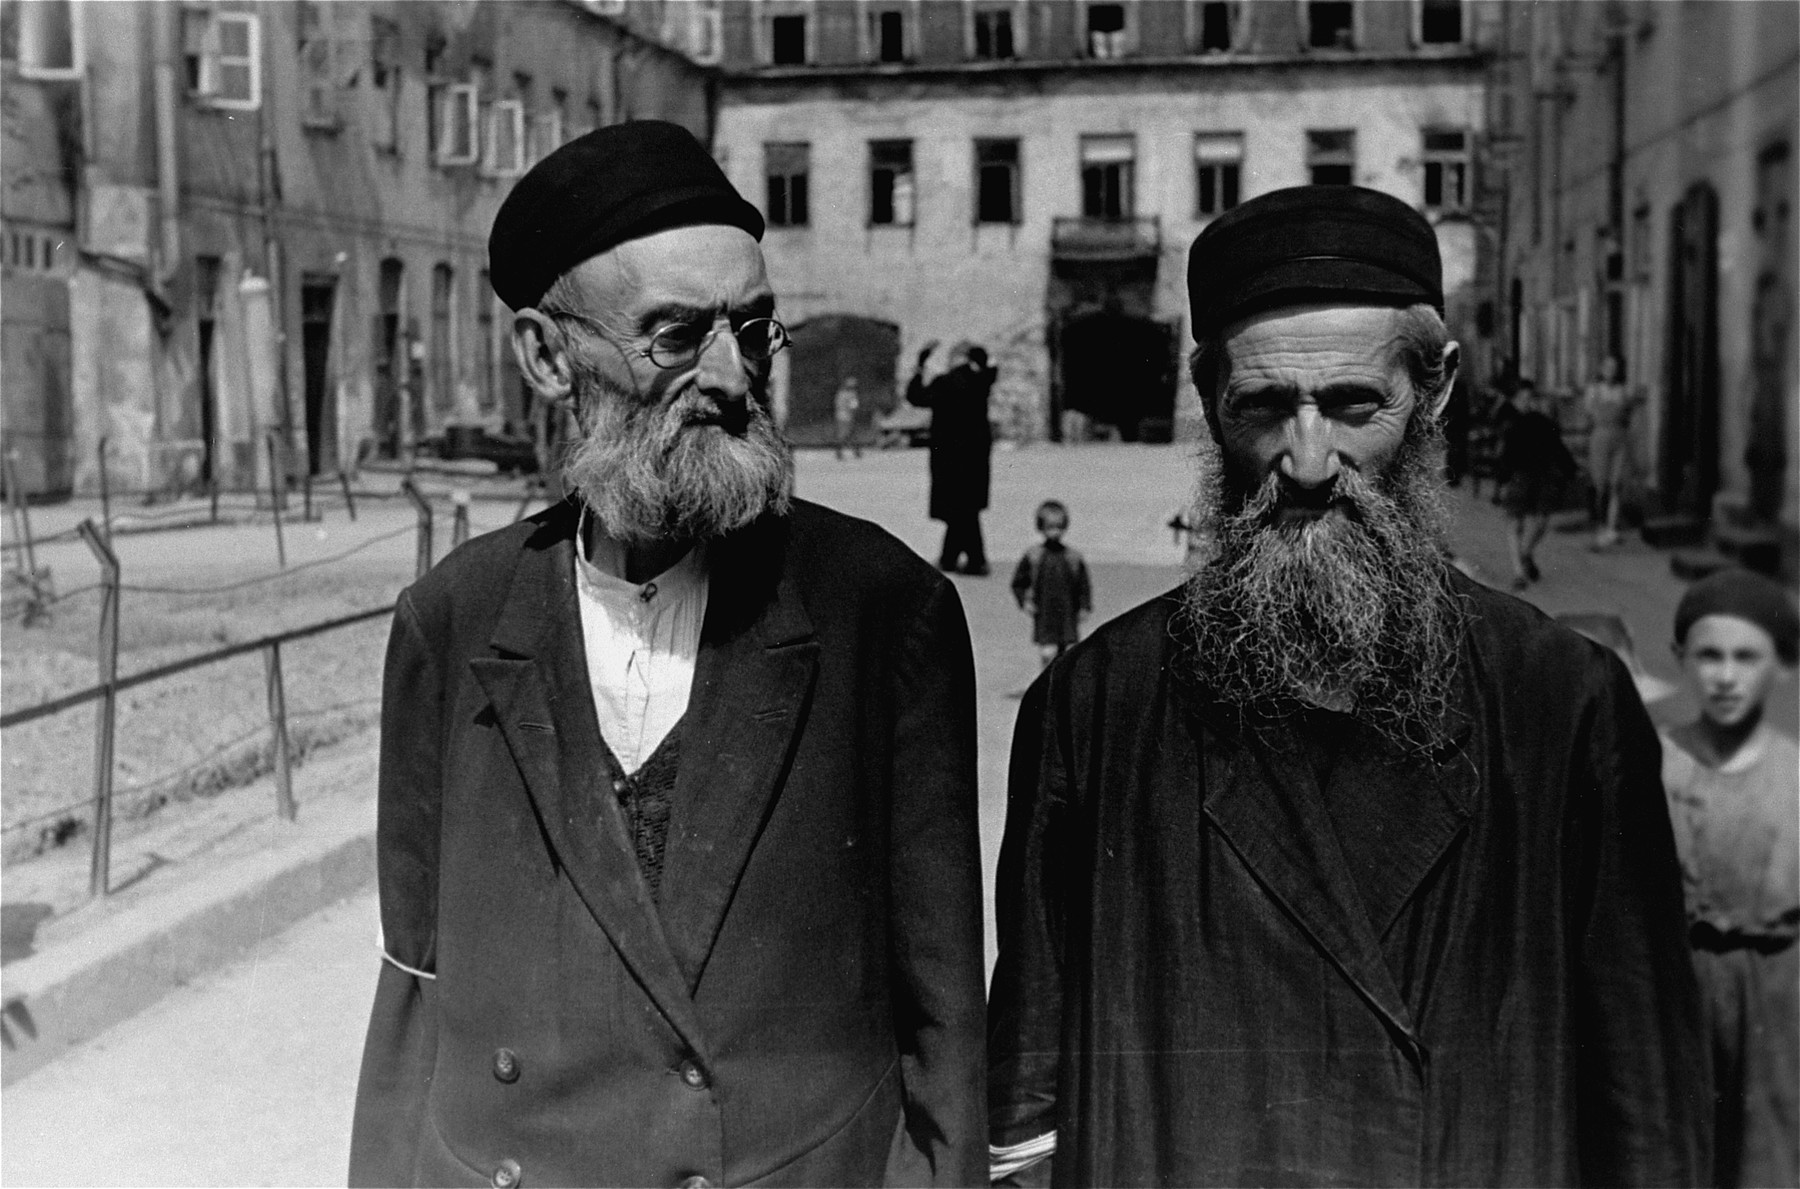 Two bearded, religious Jews walk across a courtyard in the Warsaw ghetto.